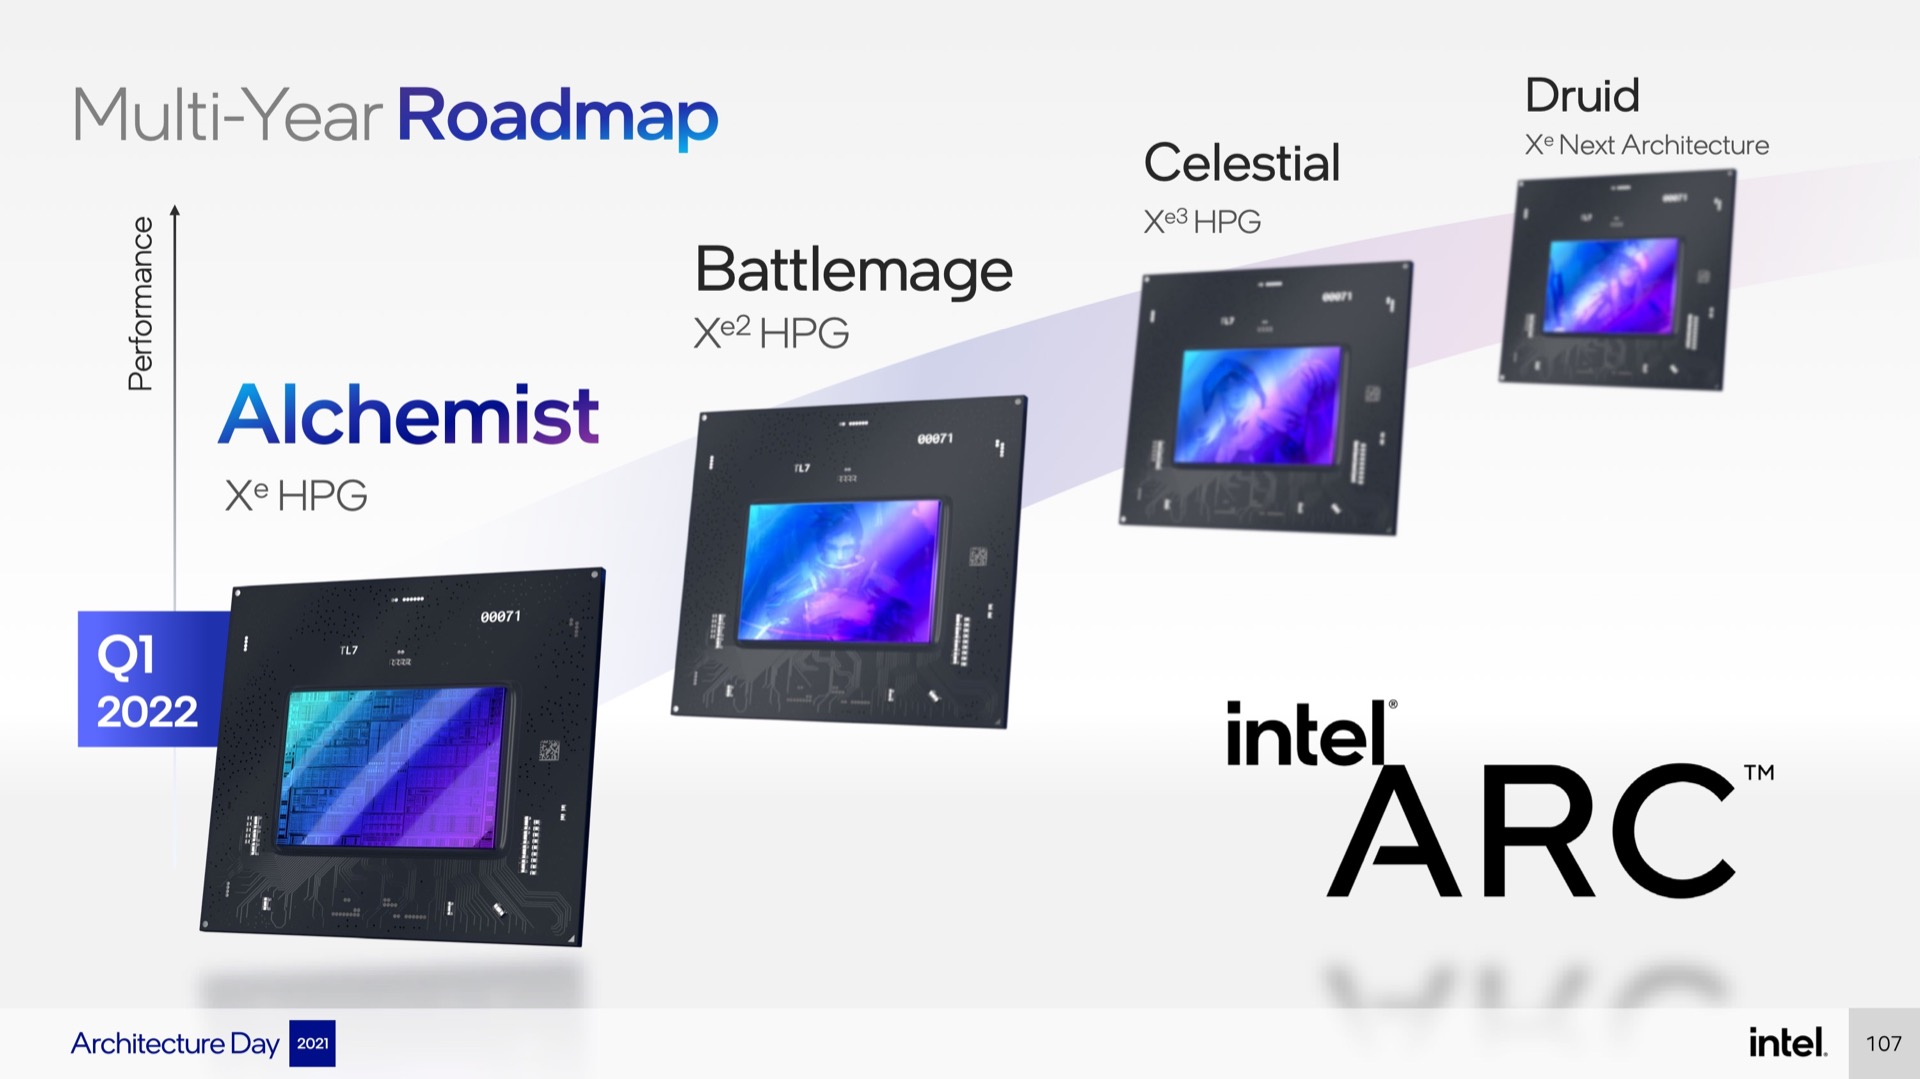 Technology Intel talked about its upcoming GPU codenames earlier this week when it announced the Arc branding. Alchemist is Xe-HPG, Battlemage will be Xe2-HPG, and Celestial will be Xe3-HPG. Druid's architecture doesn't have a name yet—we might suggest Xe4-HPG.